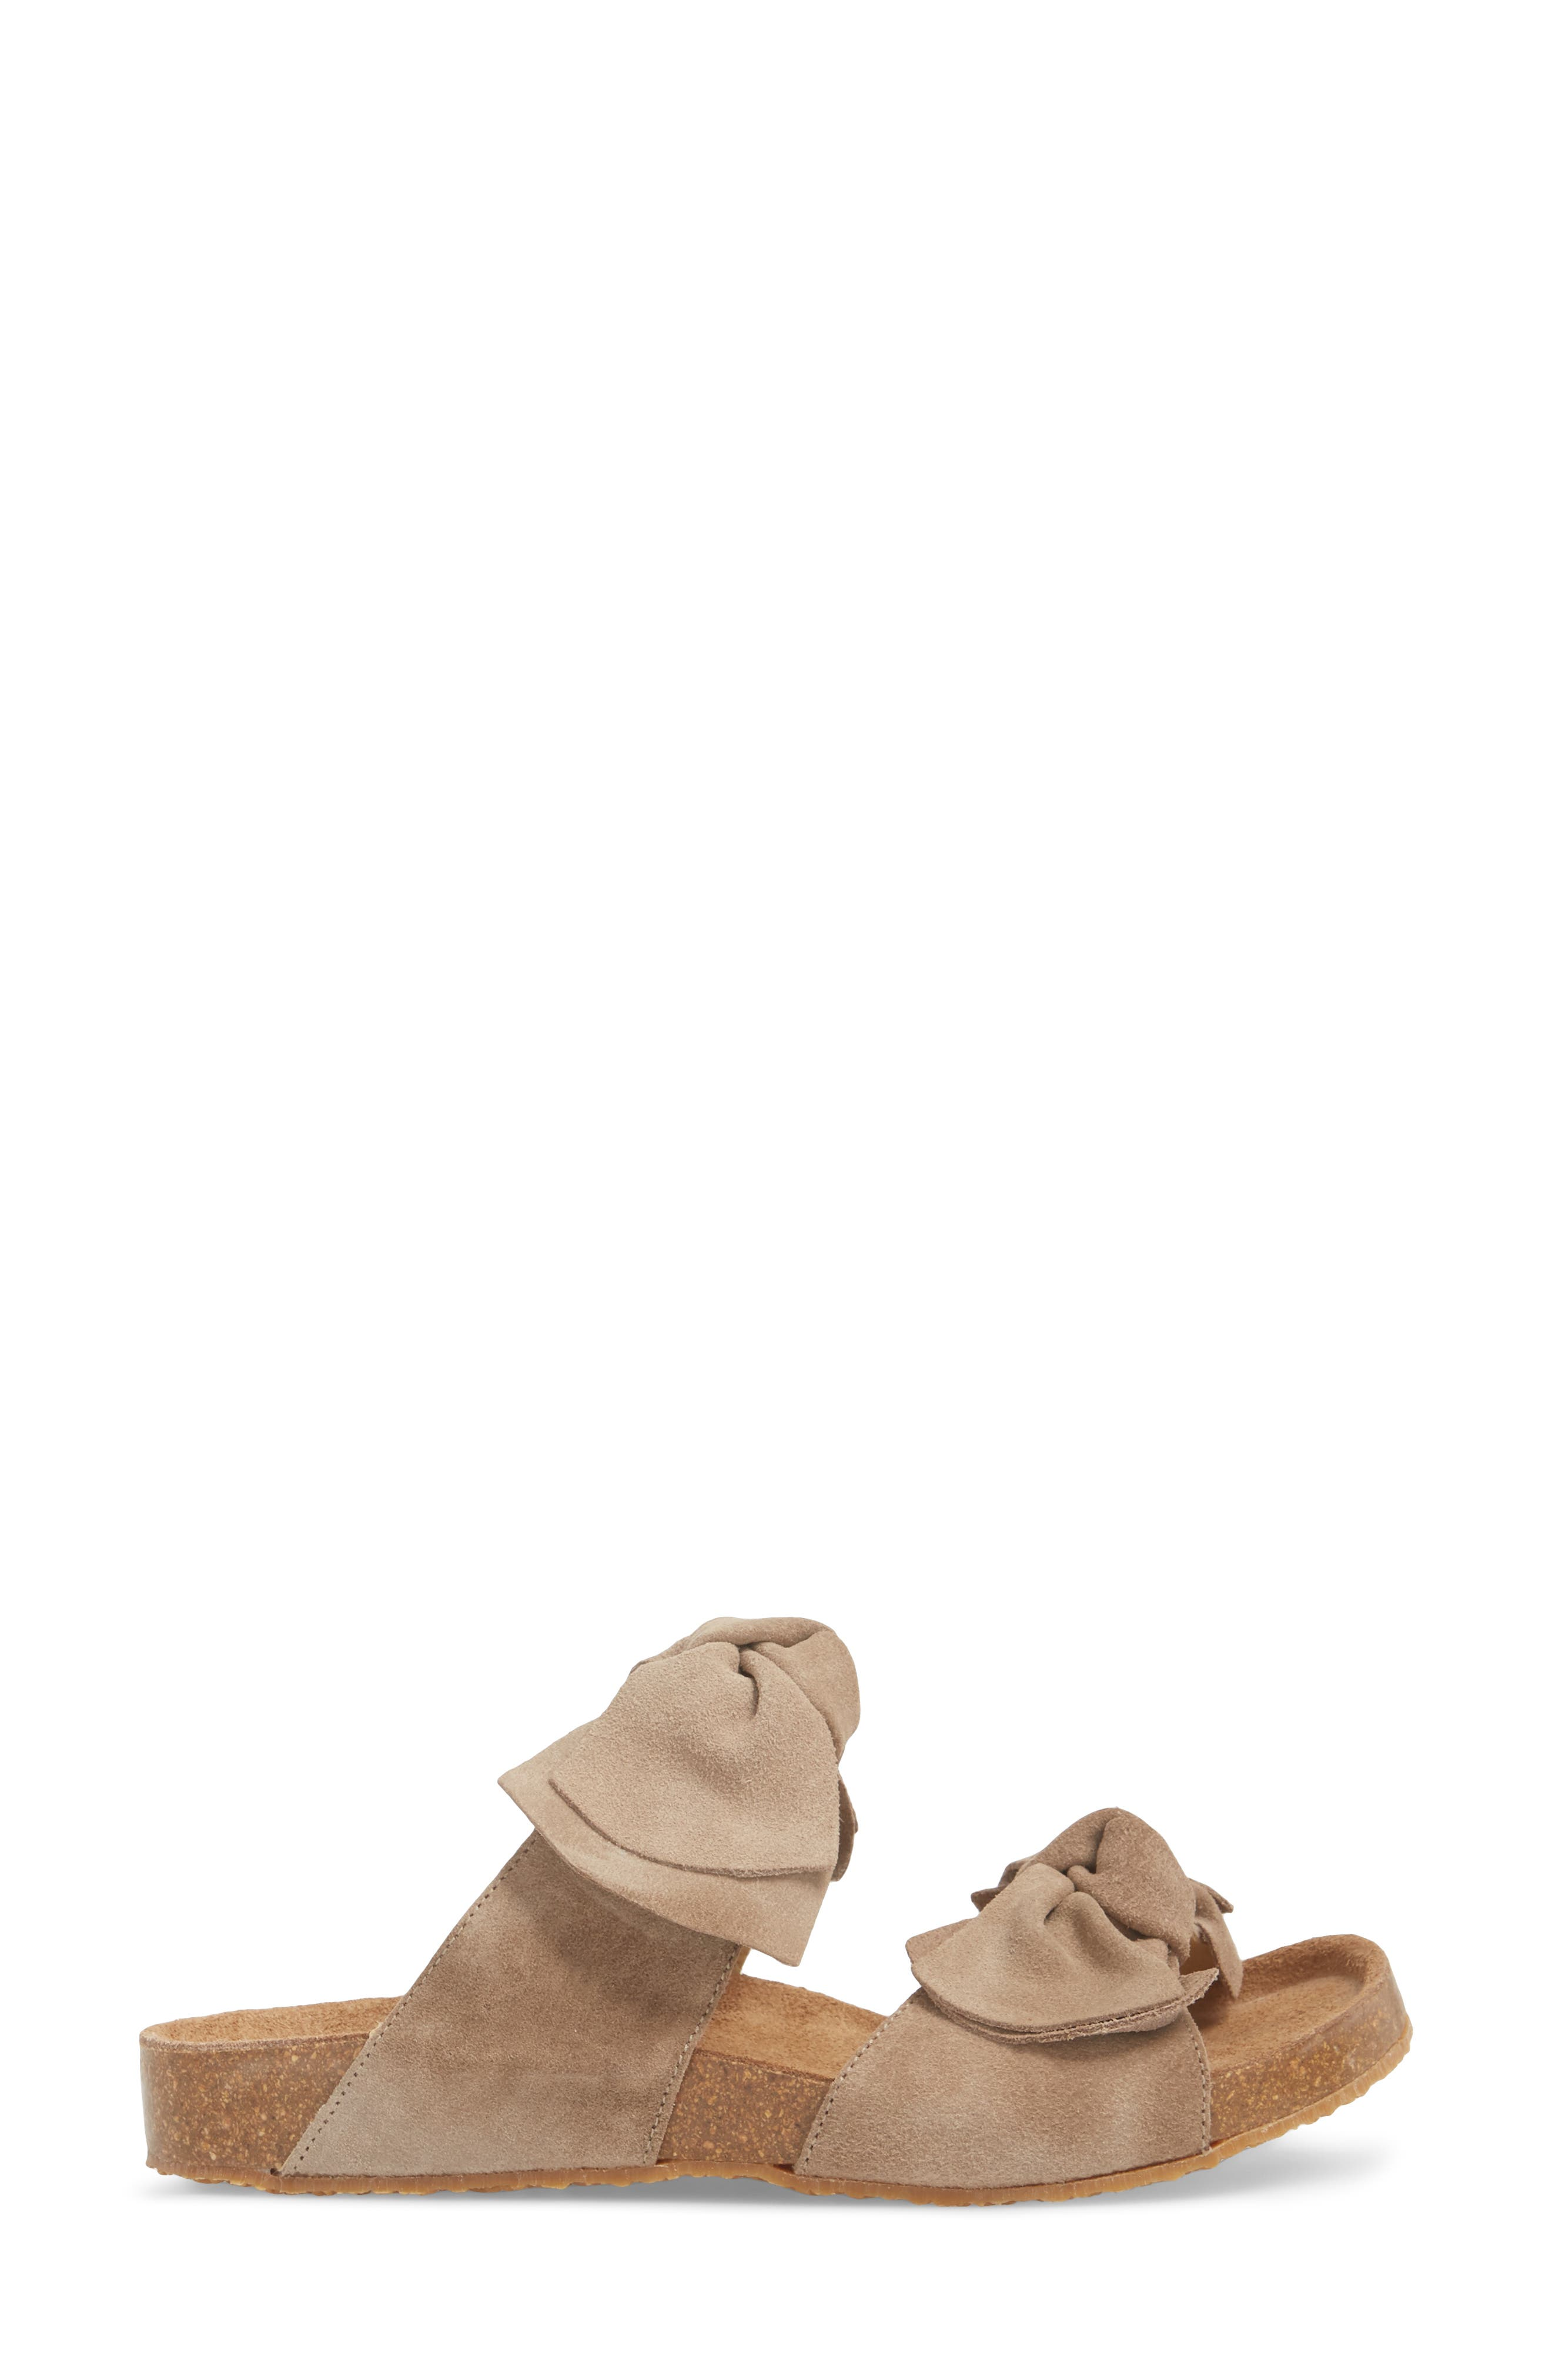 JEFFREY CAMPBELL,                             Lanai-Es Slide Sandal,                             Alternate thumbnail 3, color,                             200